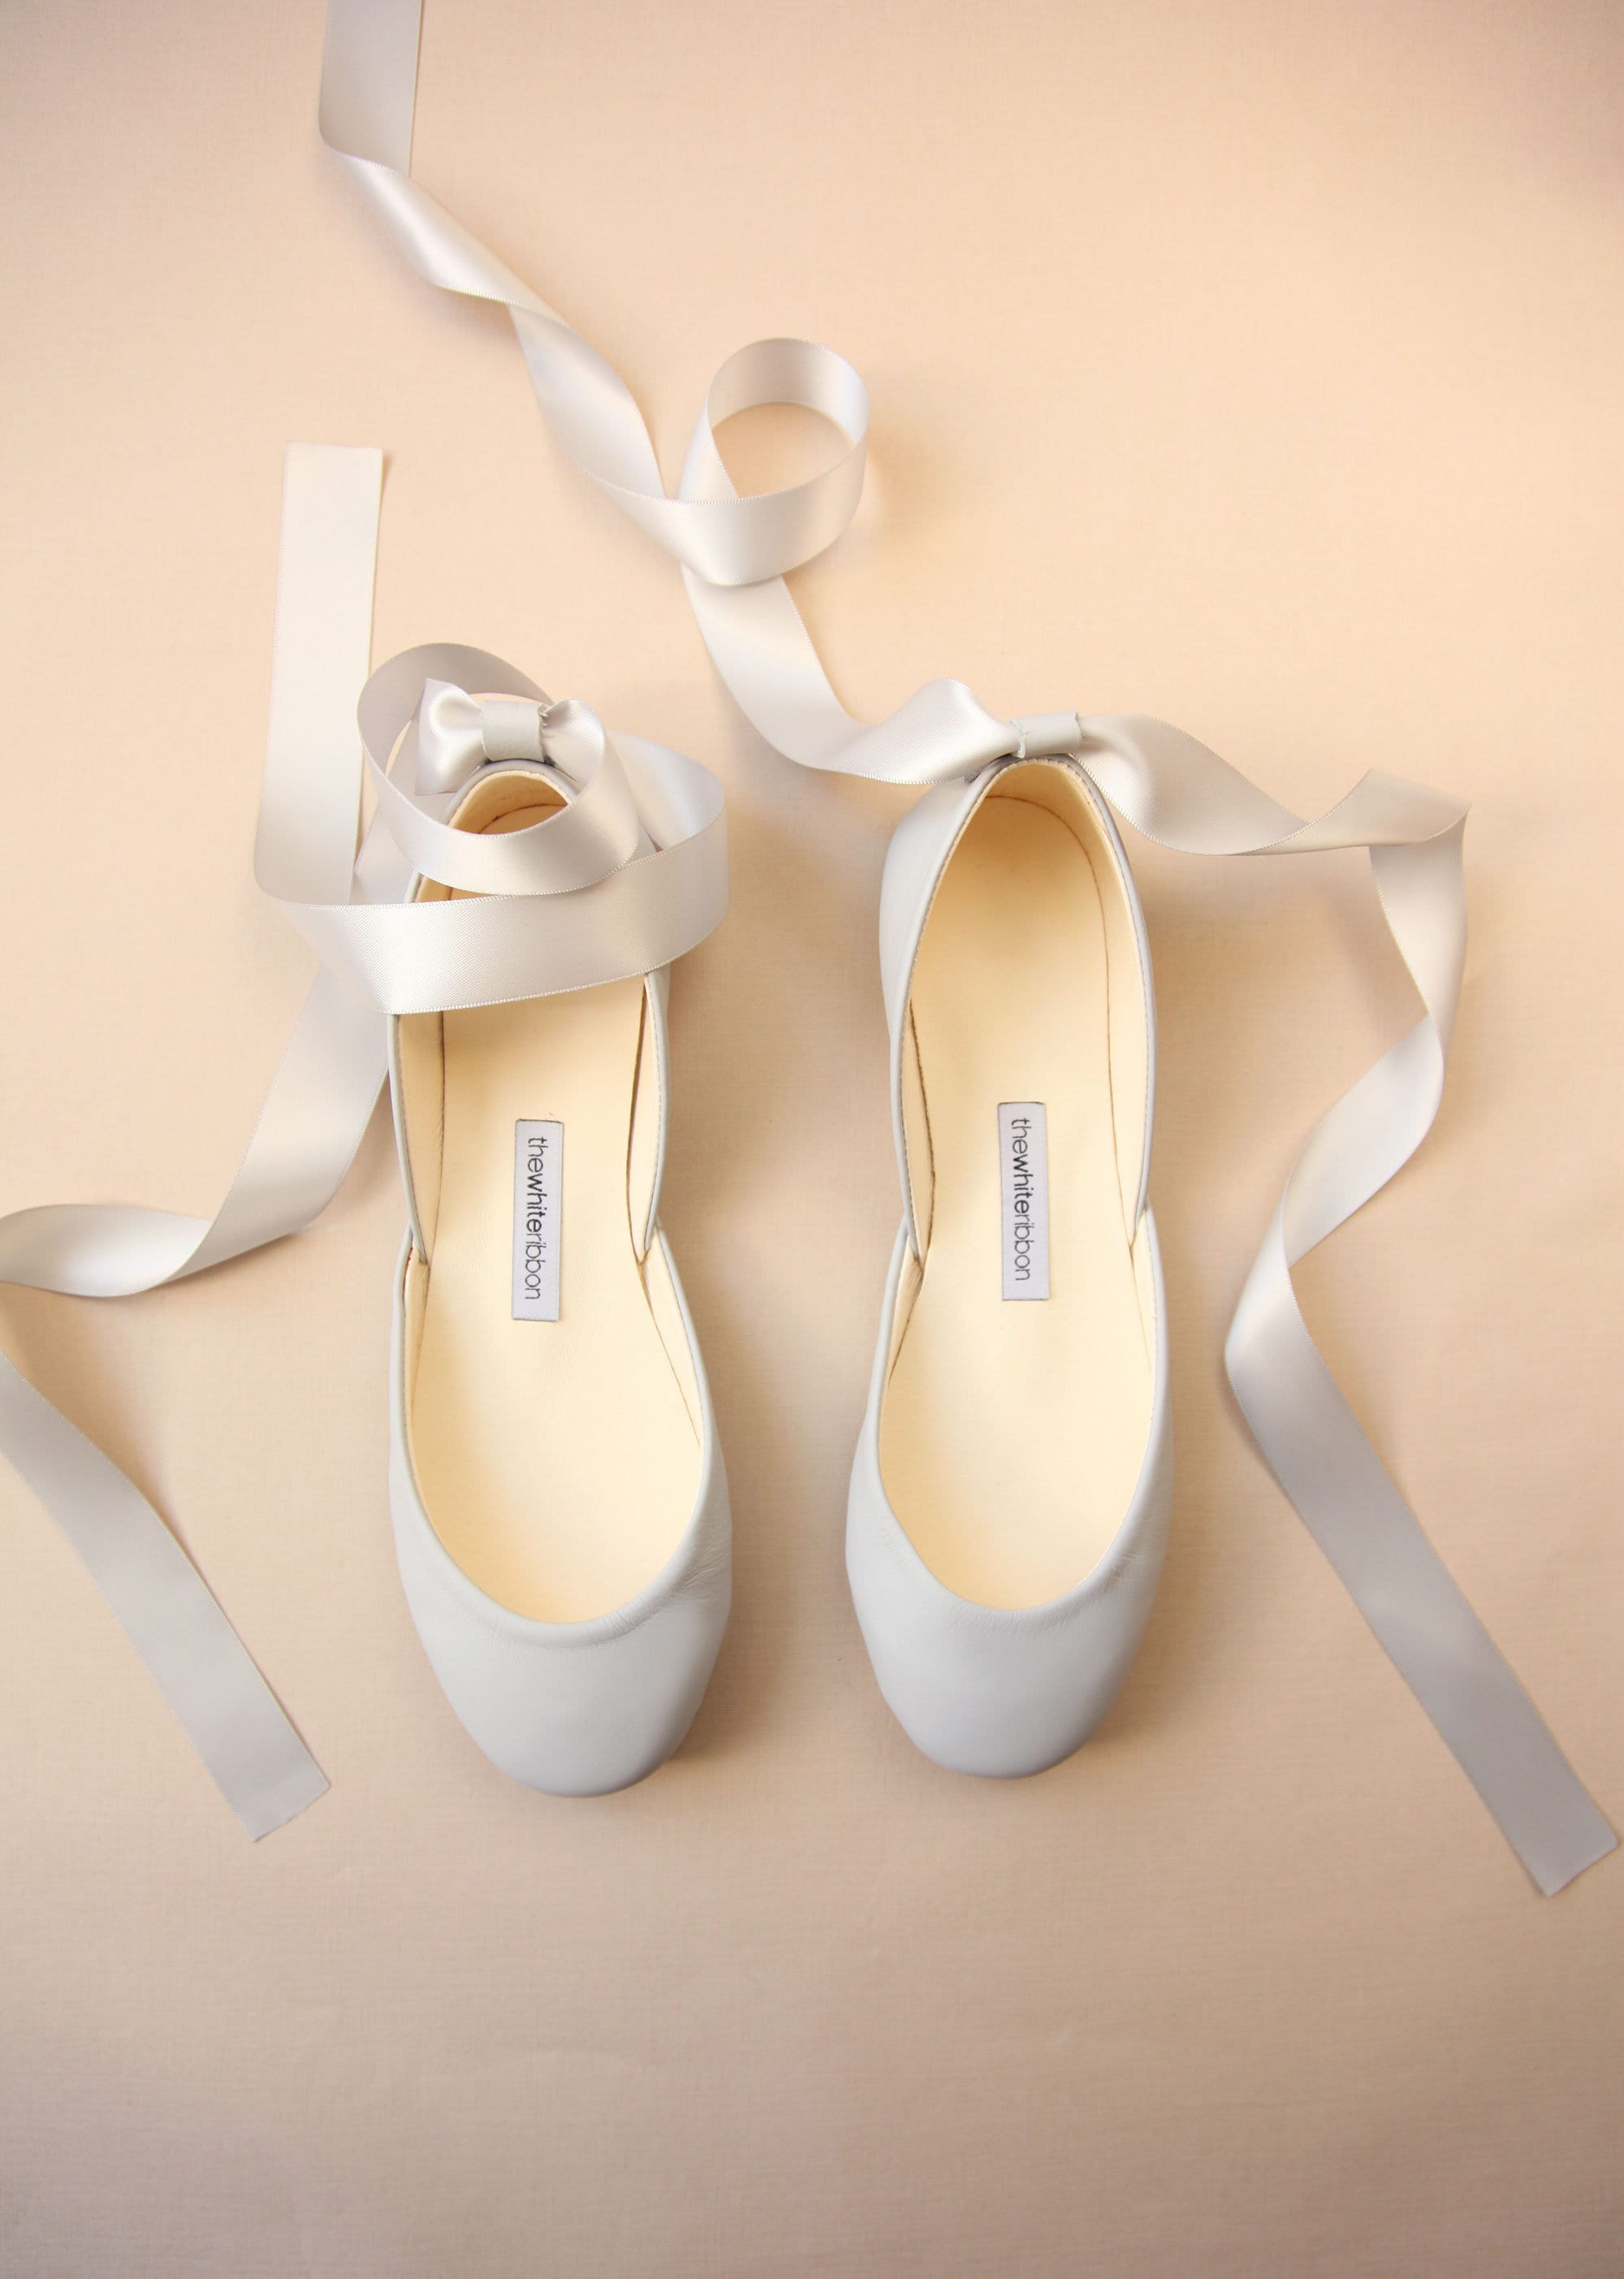 a766881529a Feather Grey Ballet Flats with Satin Ribbons   Pointe Style Shoes   Feather  Gray   Ready to Ship